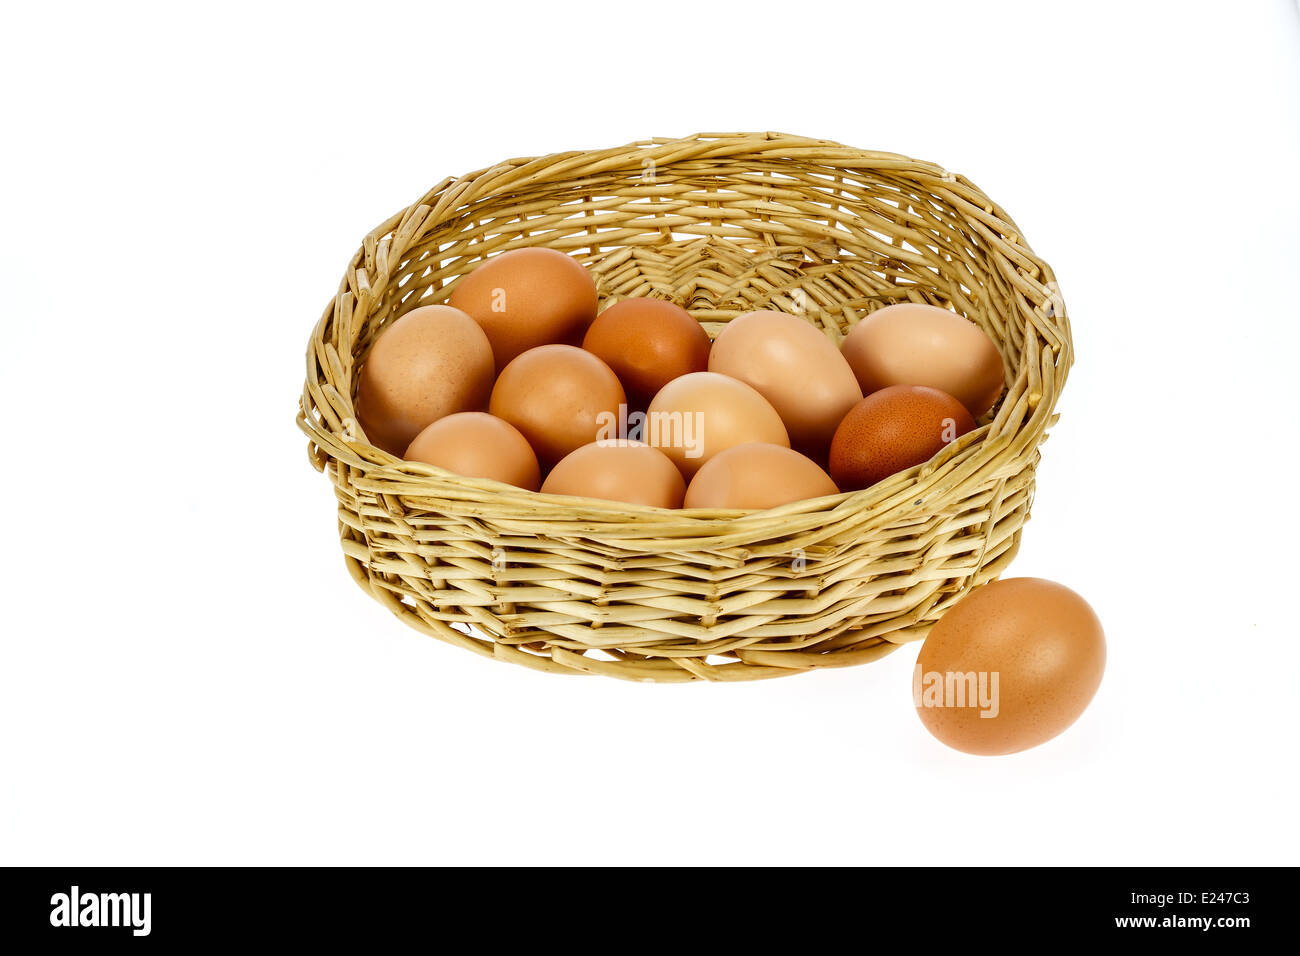 Brown eggs in a basket shot against a white background. - Stock Image